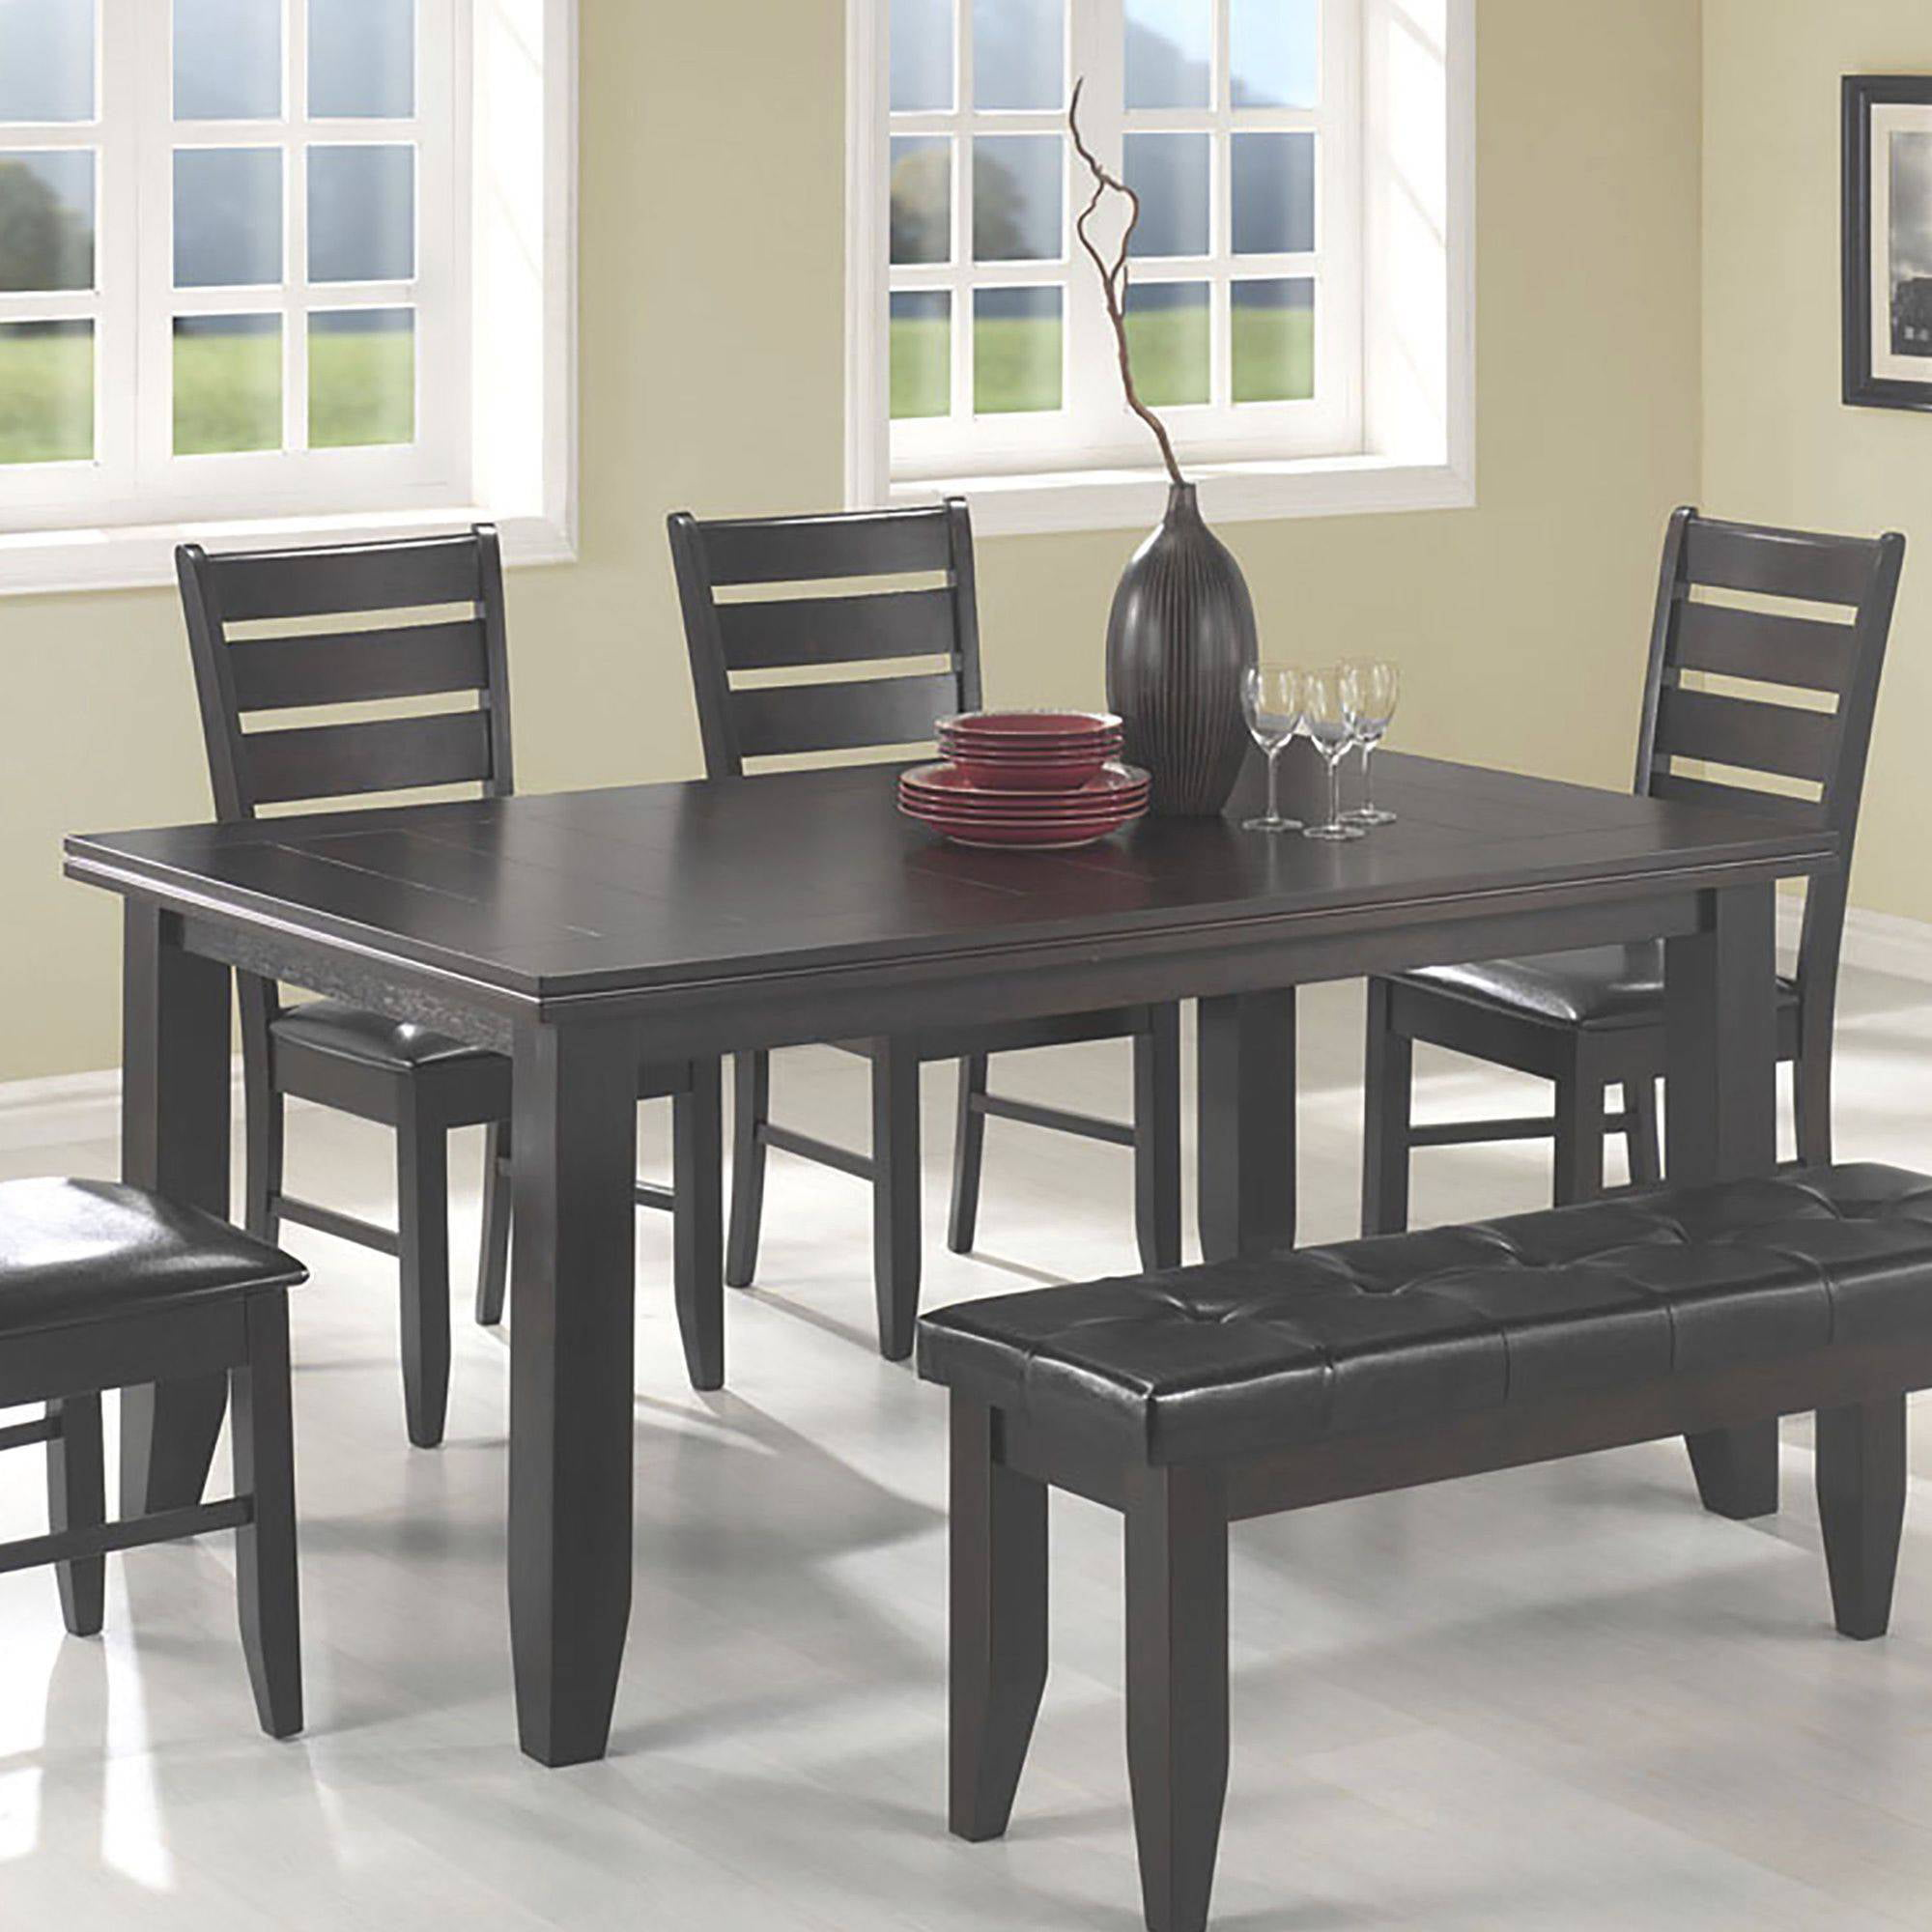 Coaster Company Dalila Dining Table - Walmart.com